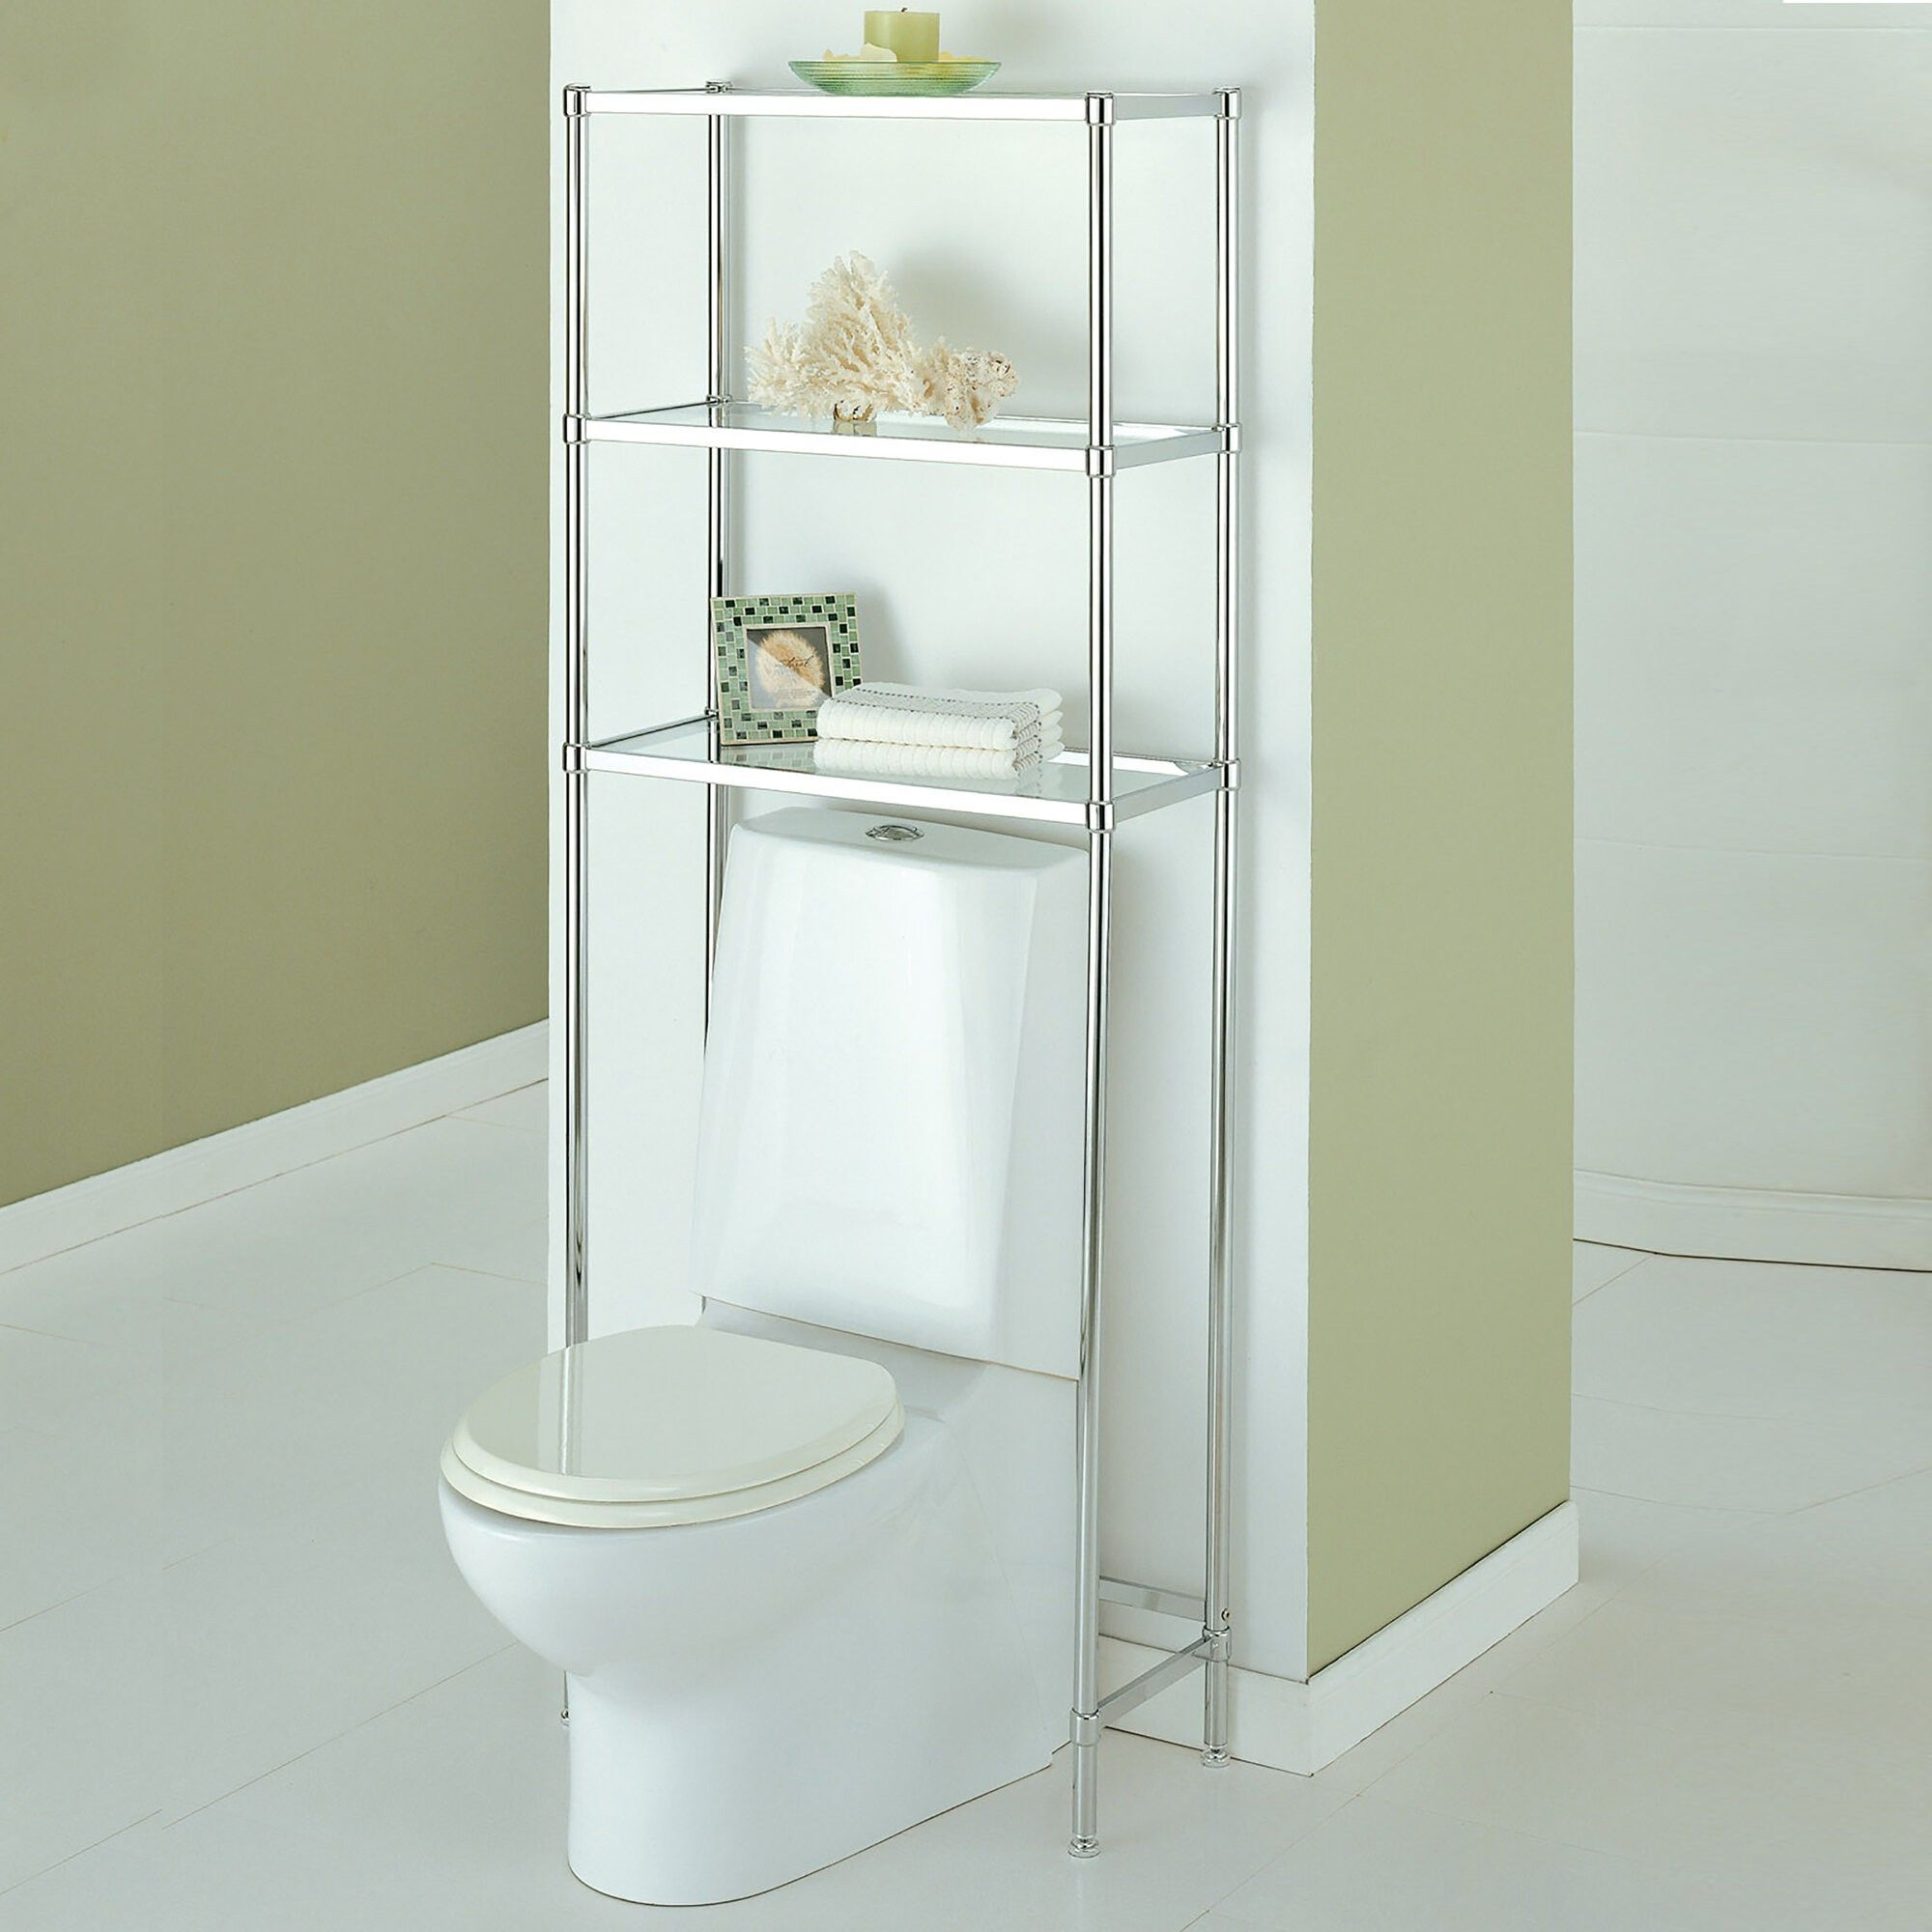 Modern Over The Toilet Storage Ideas On Foter In 2021 Toilet Storage Bathroom Space Saver Toilet Shelves